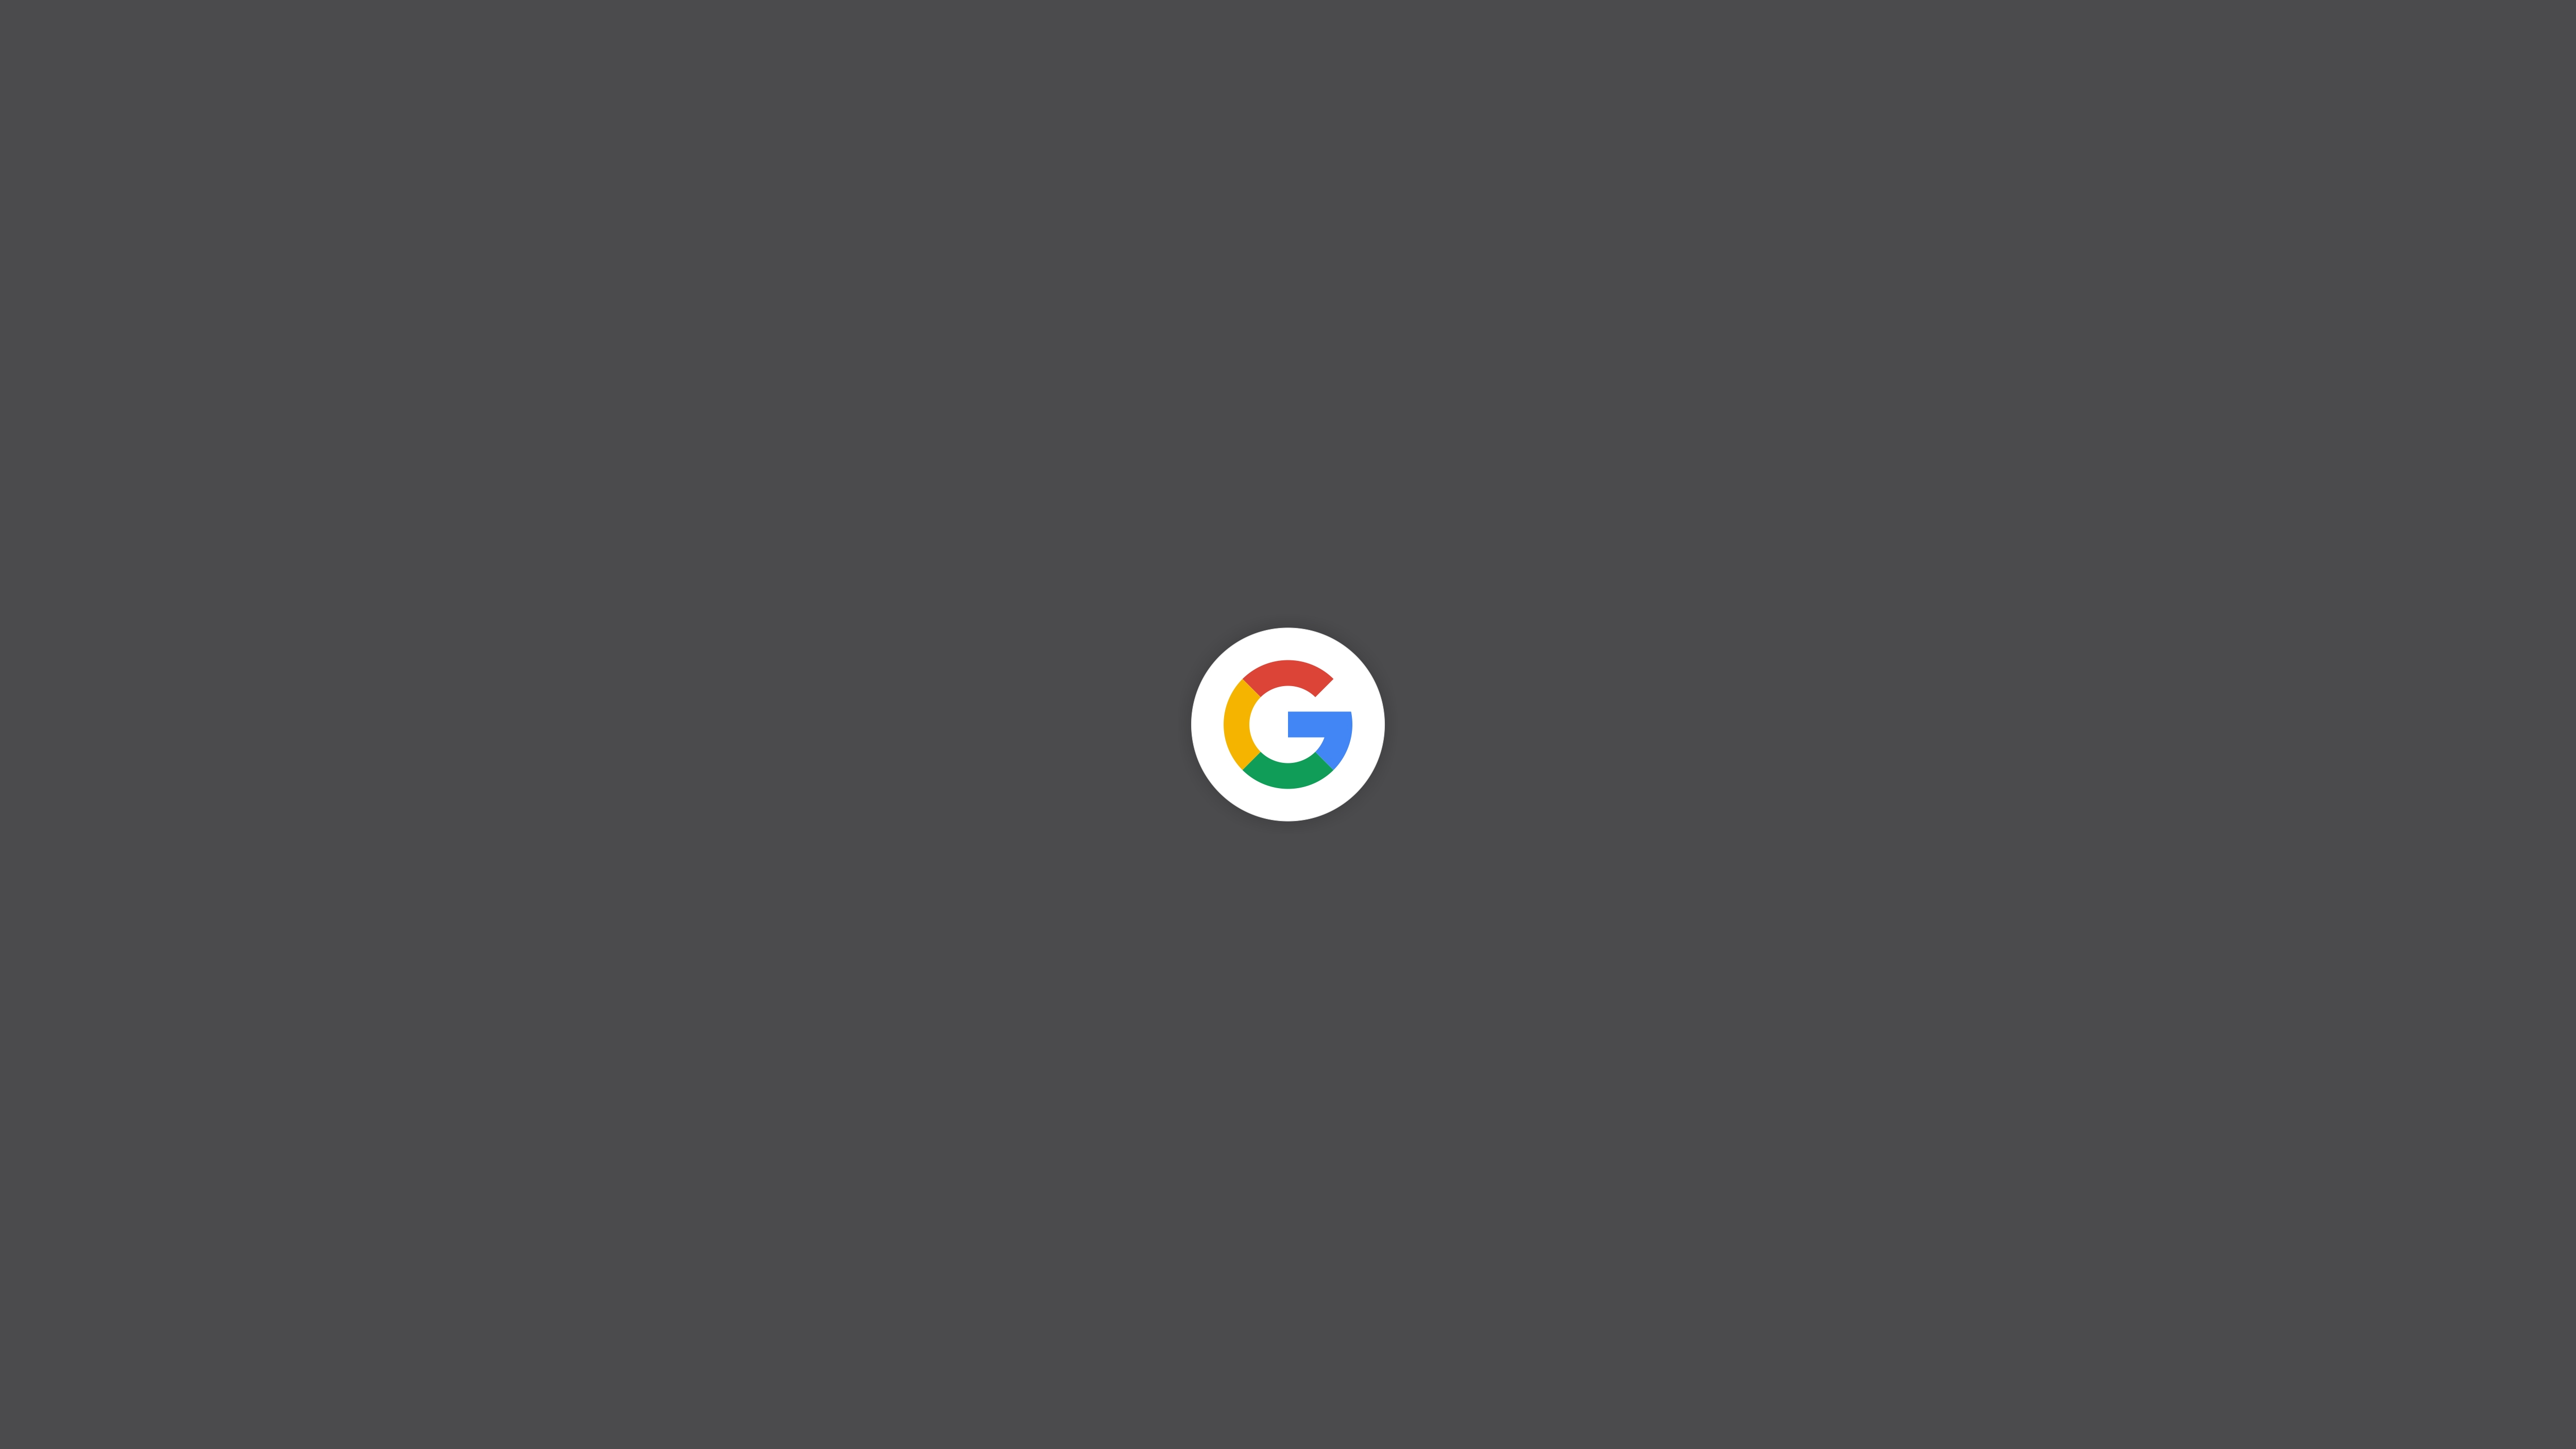 Google 4k Ultra HD Wallpaper | Background Image | 5000x2813 | ID:909464 - Wallpaper Abyss